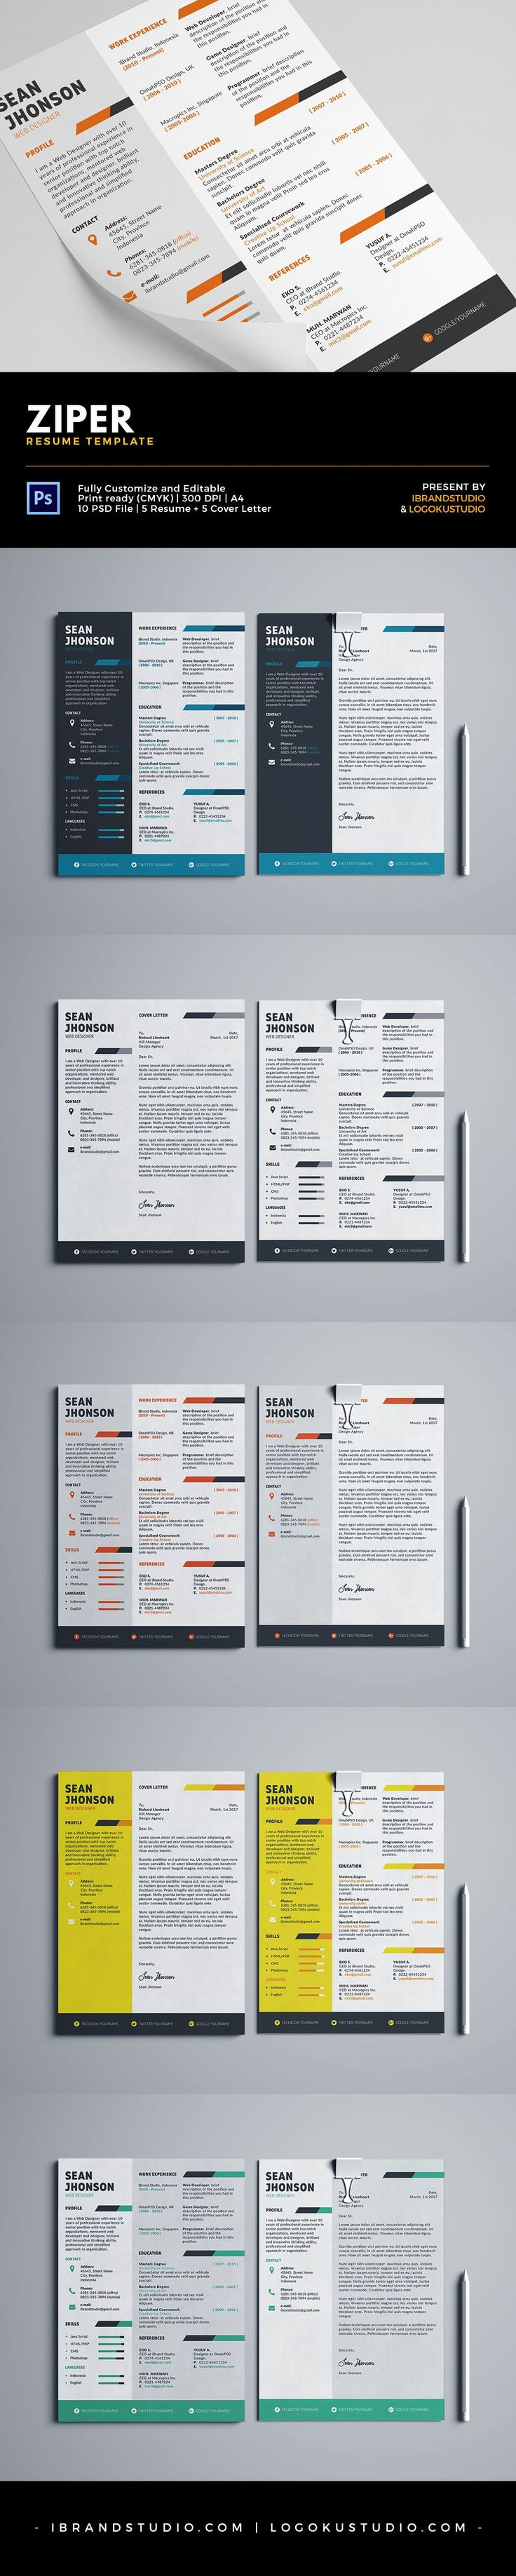 computer programs for resume%0A Free Ziper Resume Template and Cover Letter    Styles  PSD